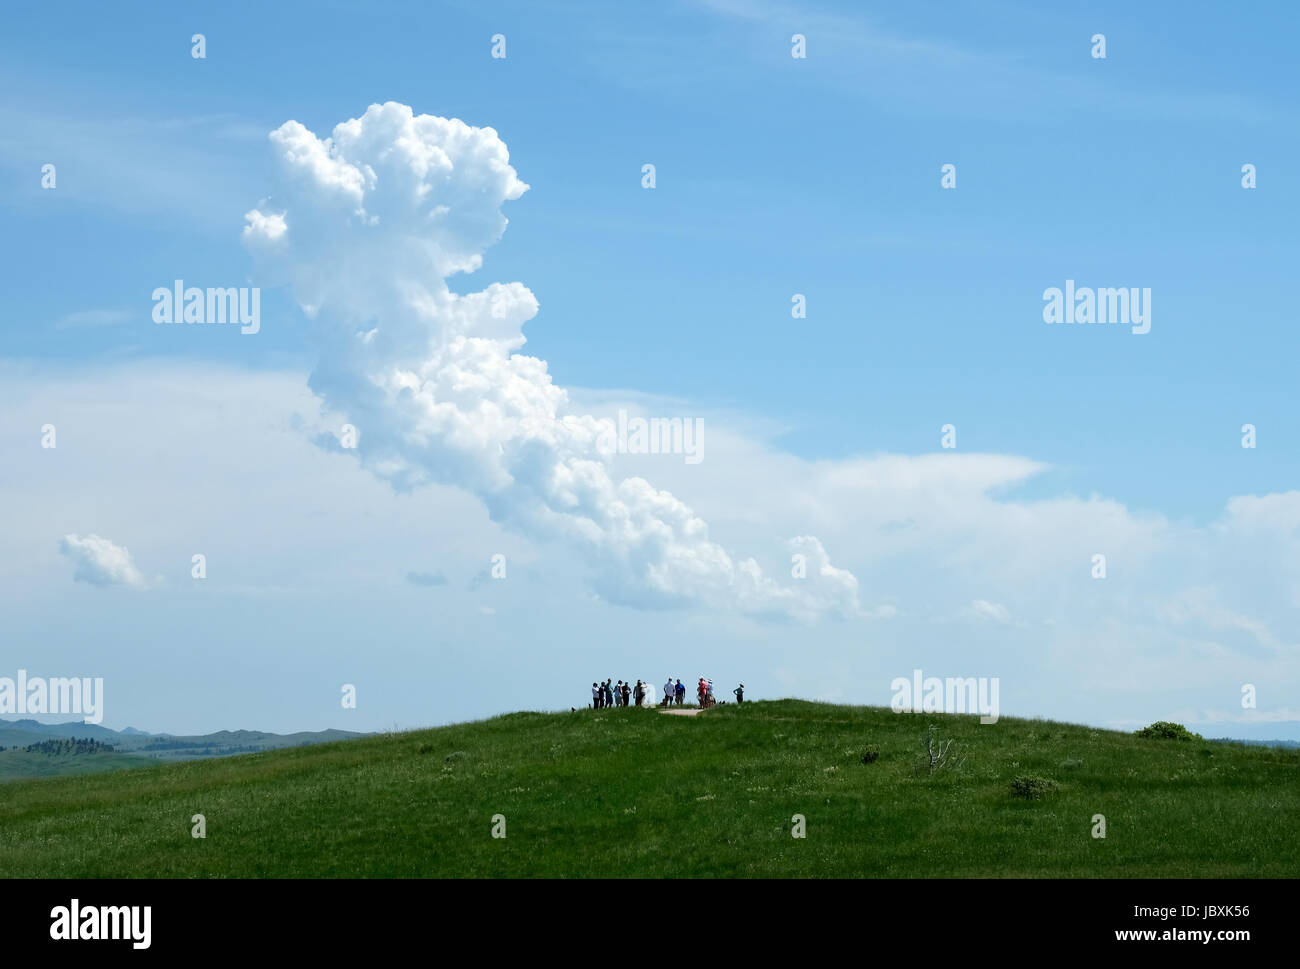 Visitors stand on a high point at the Little Bighorn battlefield site, Crow Agency, Montana, USA. Stock Photo